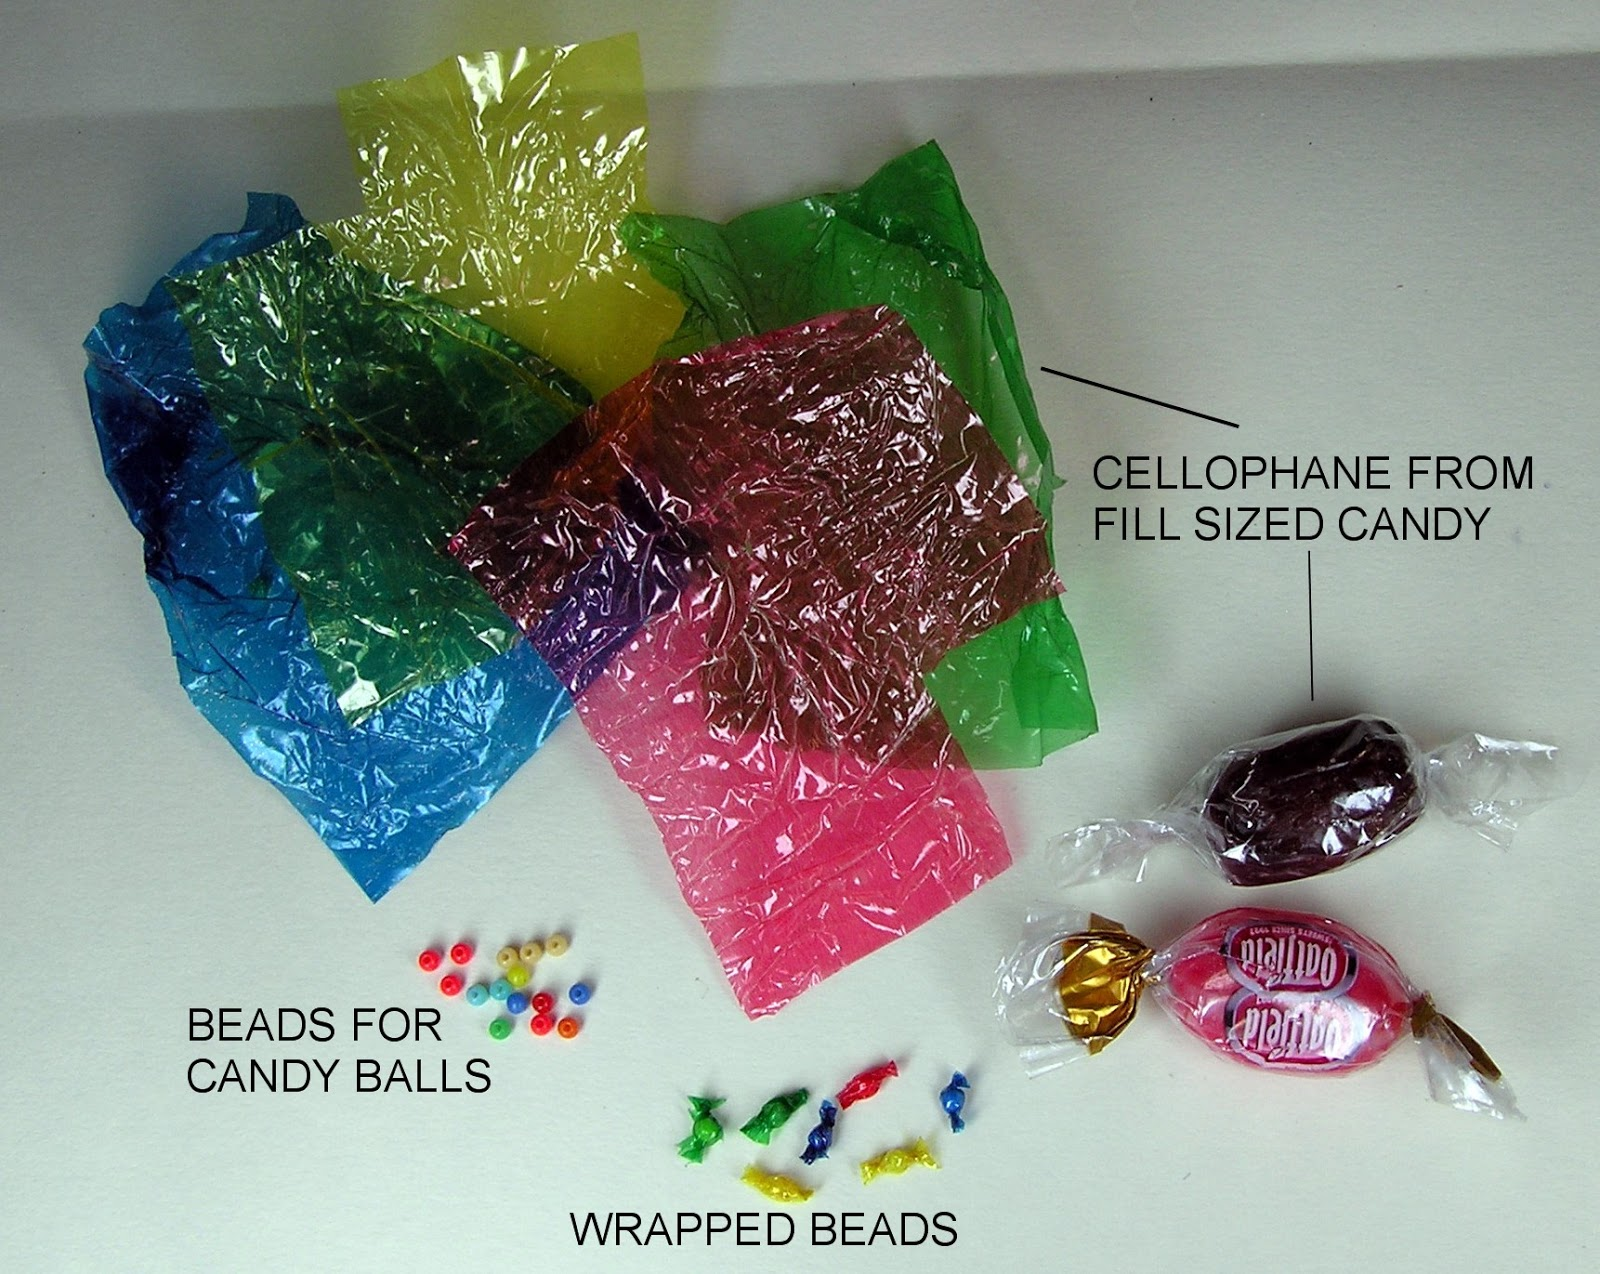 Wrapped Candy Drawings Wrap these candies in clearWrapped Candy Drawings